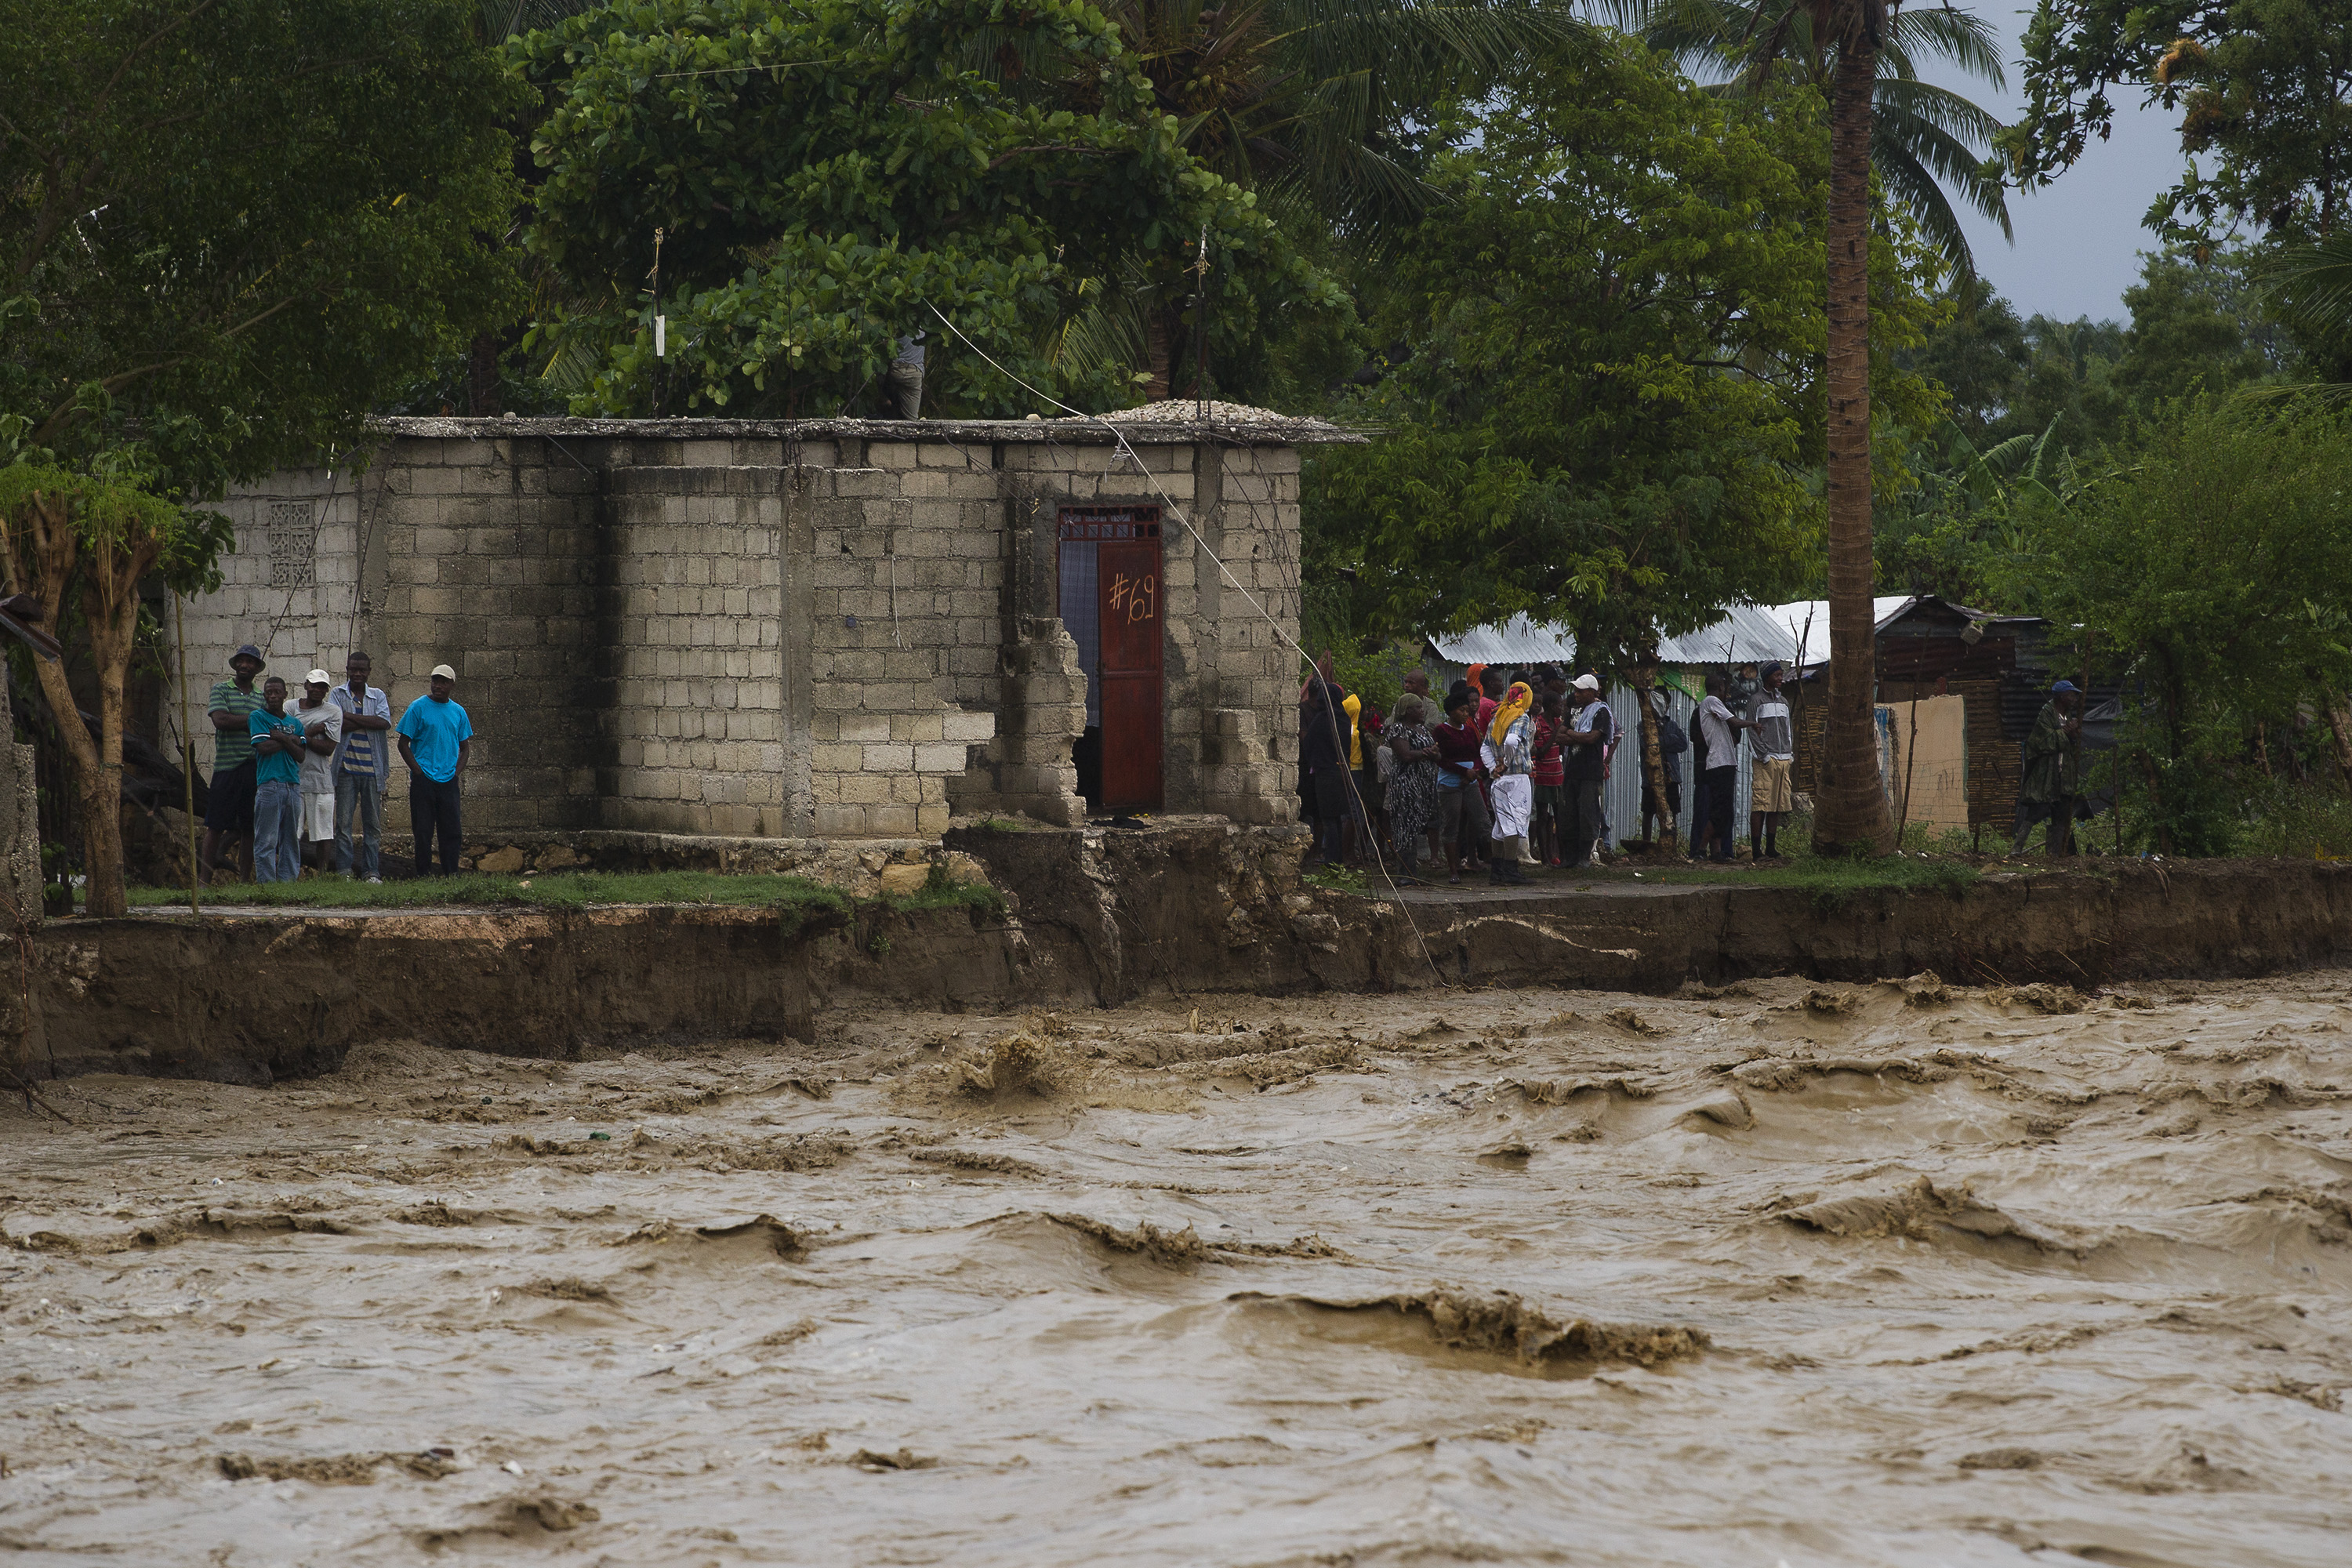 mitigating disasters in developing countries essay Importance of disaster preparedness and mitigation and the role that peace corps volunteers can of all deaths from natural disasters occur in developing countries.